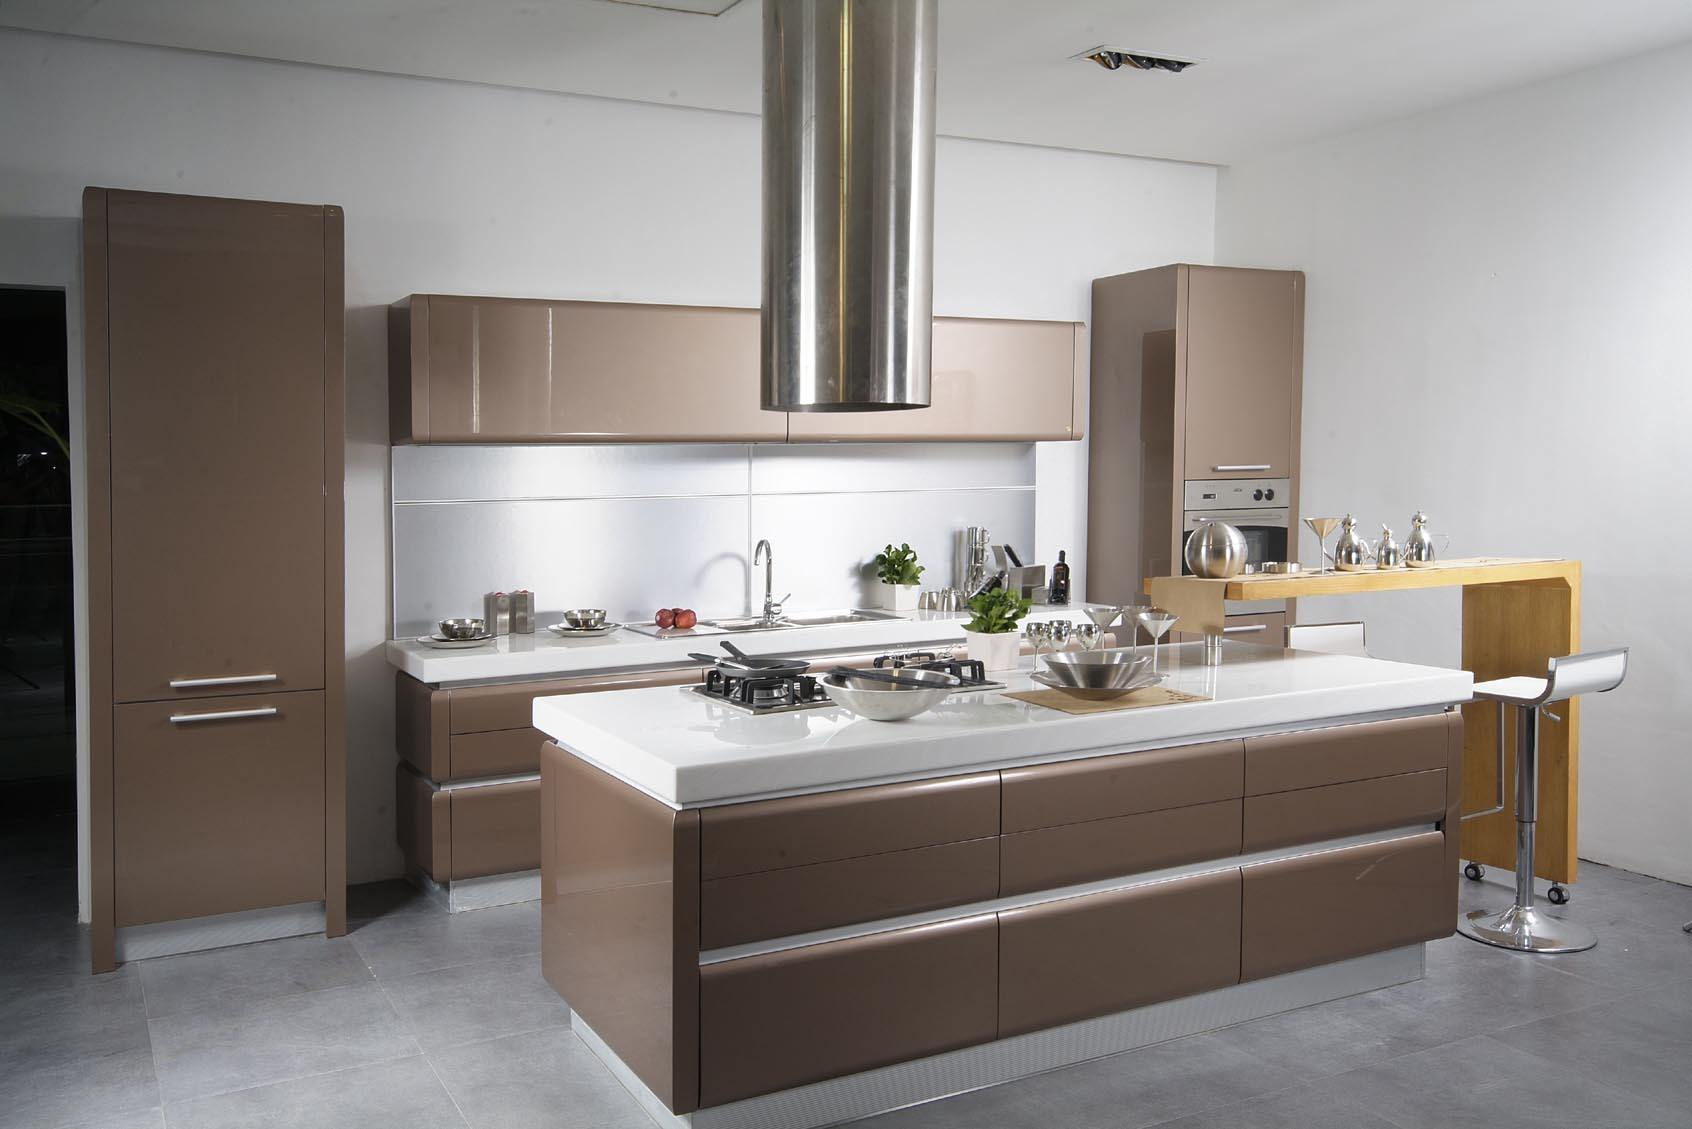 Coffee colored facades of the furniture set and tube-looking extractor hood avor the island